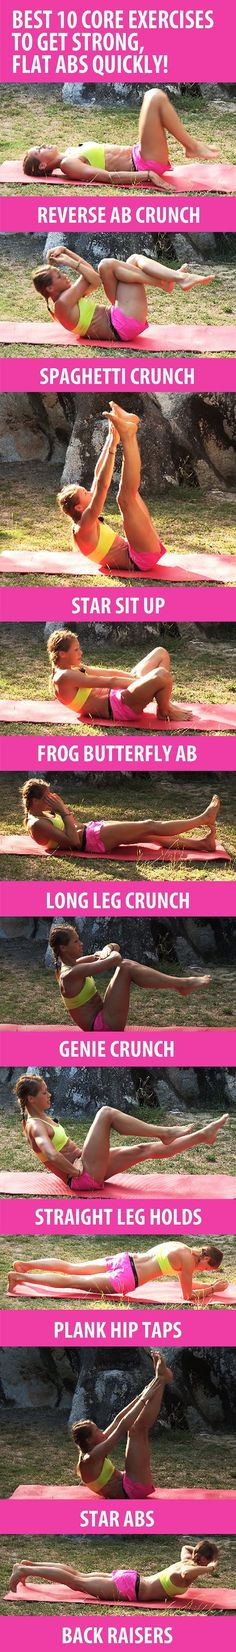 These 10 core exercises will help you sculpt six-pack abs, build core strength, and get rid of belly fat quickly. Recommended reps: BEGINNERS 8-10, INTERMEDIATE 10-15, ADVANCED 20-30+ -abworkout -muffintop -flatbelly -flatstomach -workoutforwomen -upperabs -lowerabs -bellyfat